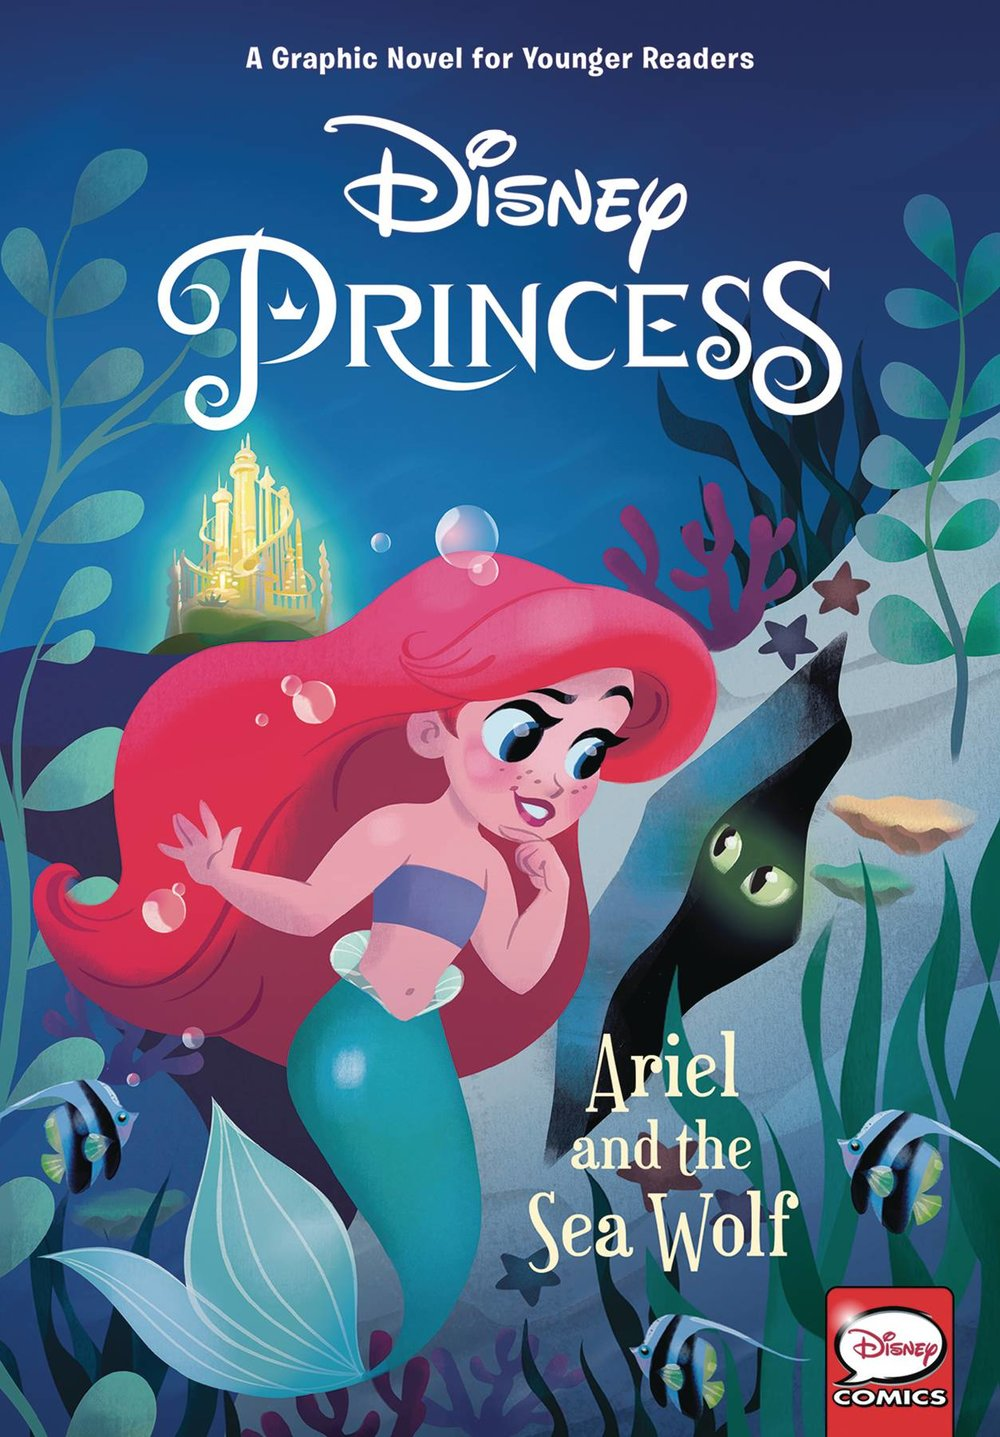 DISNEY PRINCESS HC ARIEL AND SEA WOLF (YOUNG READERS).jpg